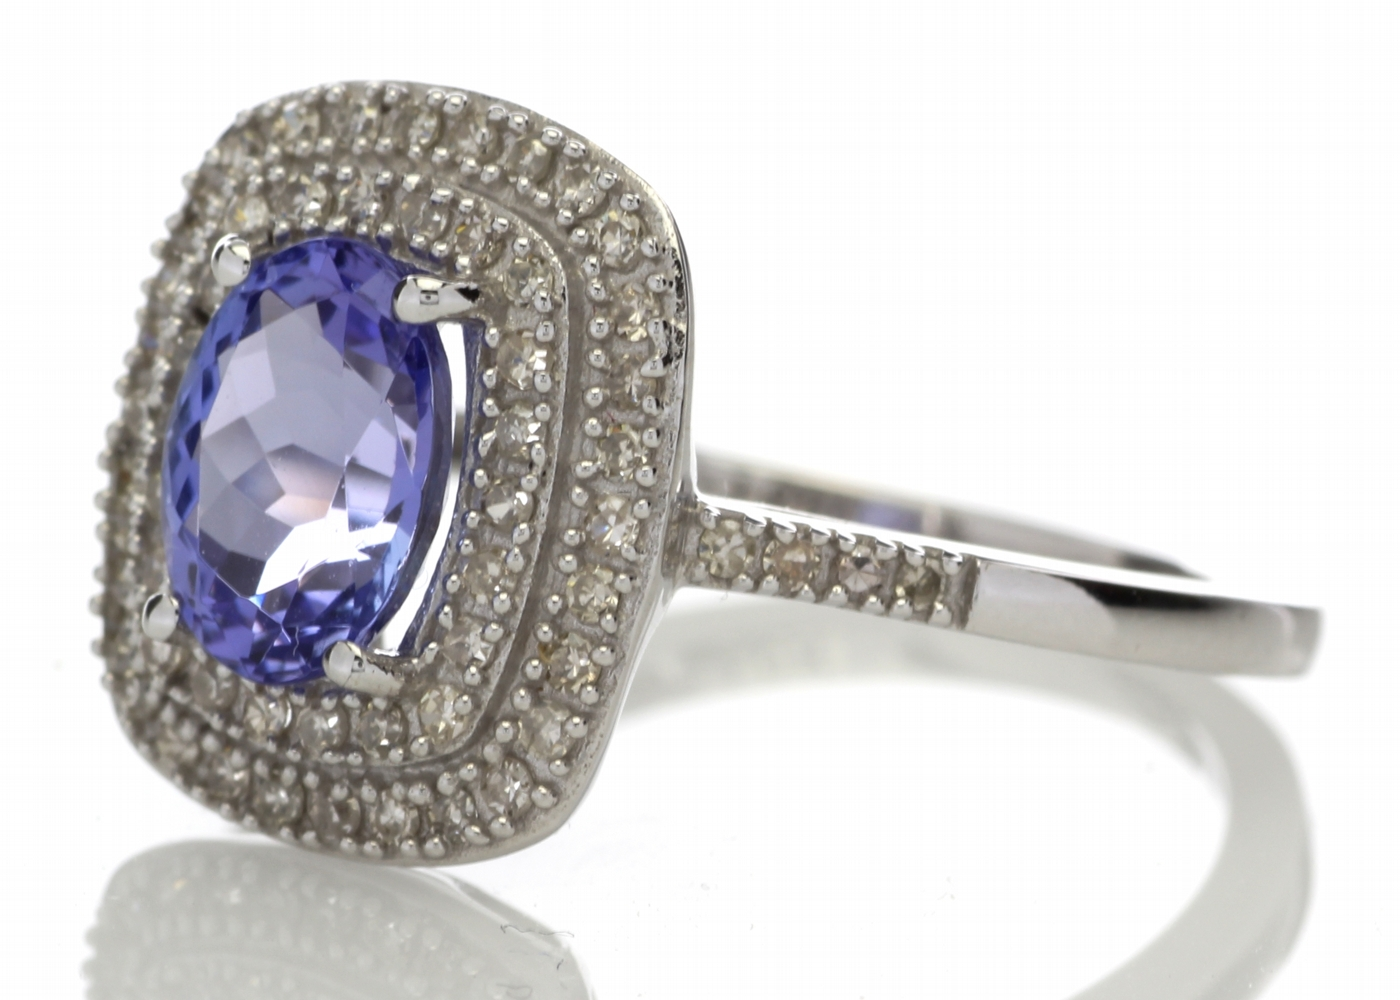 9ct Gold Oval Tanzanite And Diamond Cluster Ring 0.33 Carats - Image 2 of 5